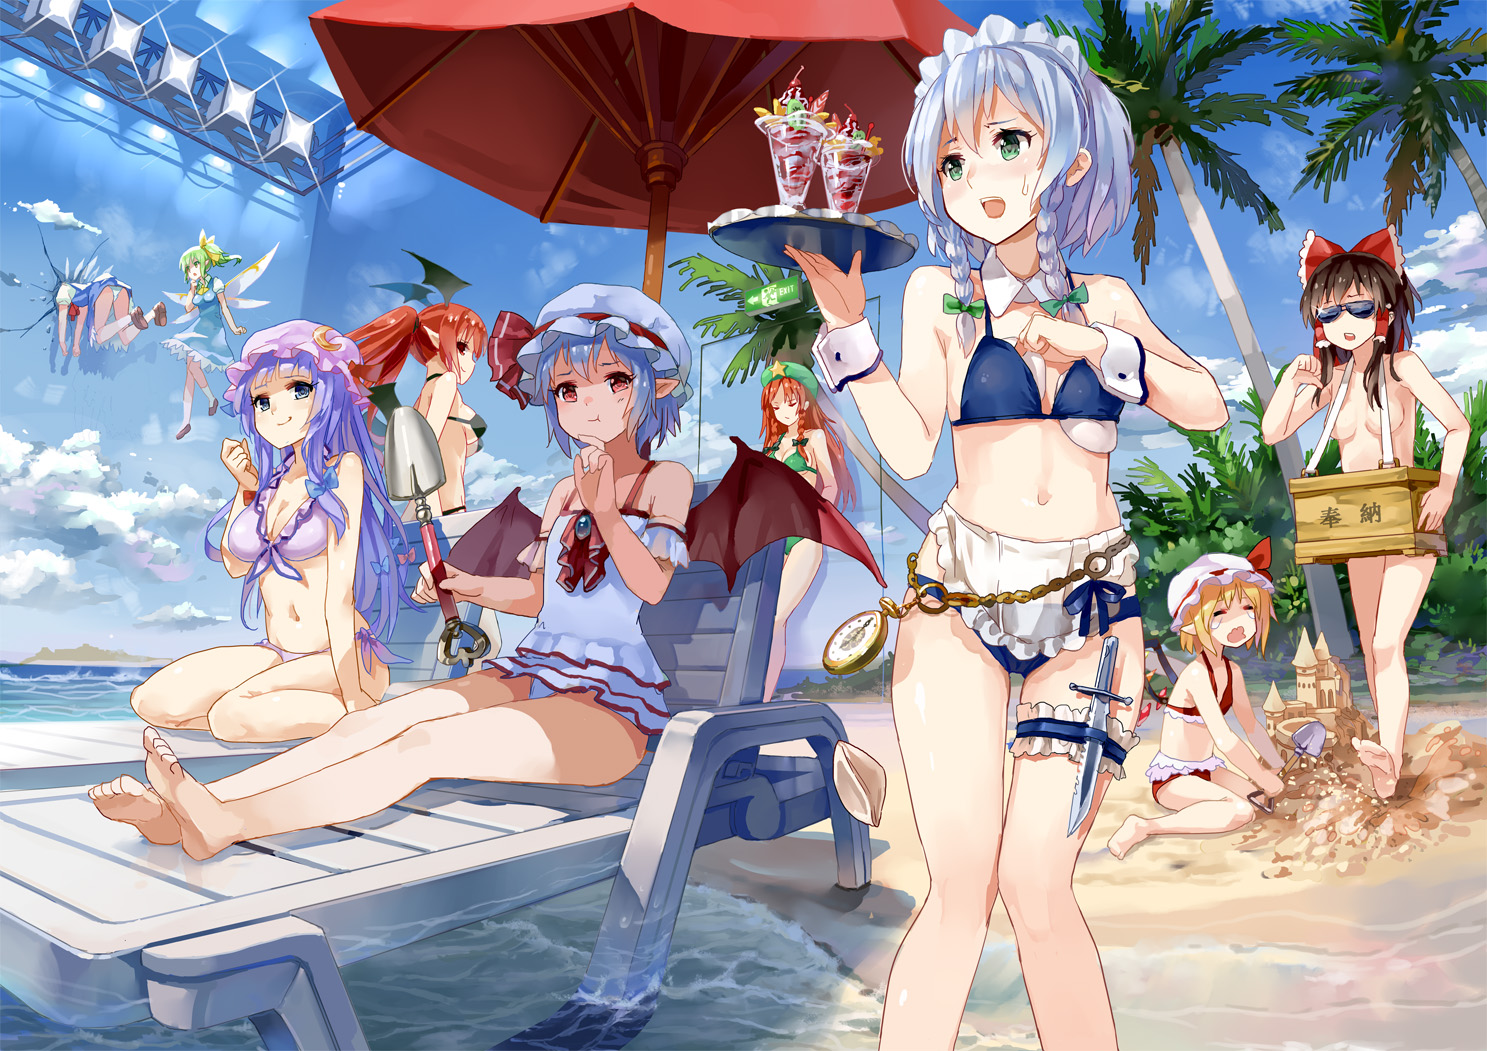 77gl ass barefoot beach bikini blonde_hair blue_eyes blue_hair blush bow brown_hair cirno clouds daiyousei dress flandre_scarlet food garter gray_hair green_eyes green_hair group hakurei_reimu hat hong_meiling ice_cream izayoi_sakuya knife koakuma long_hair nude panties patchouli_knowledge purple_eyes purple_hair red_eyes red_hair remilia_scarlet ribbons short_hair sky swimsuit tears touhou tree umbrella underwear water weapon wings